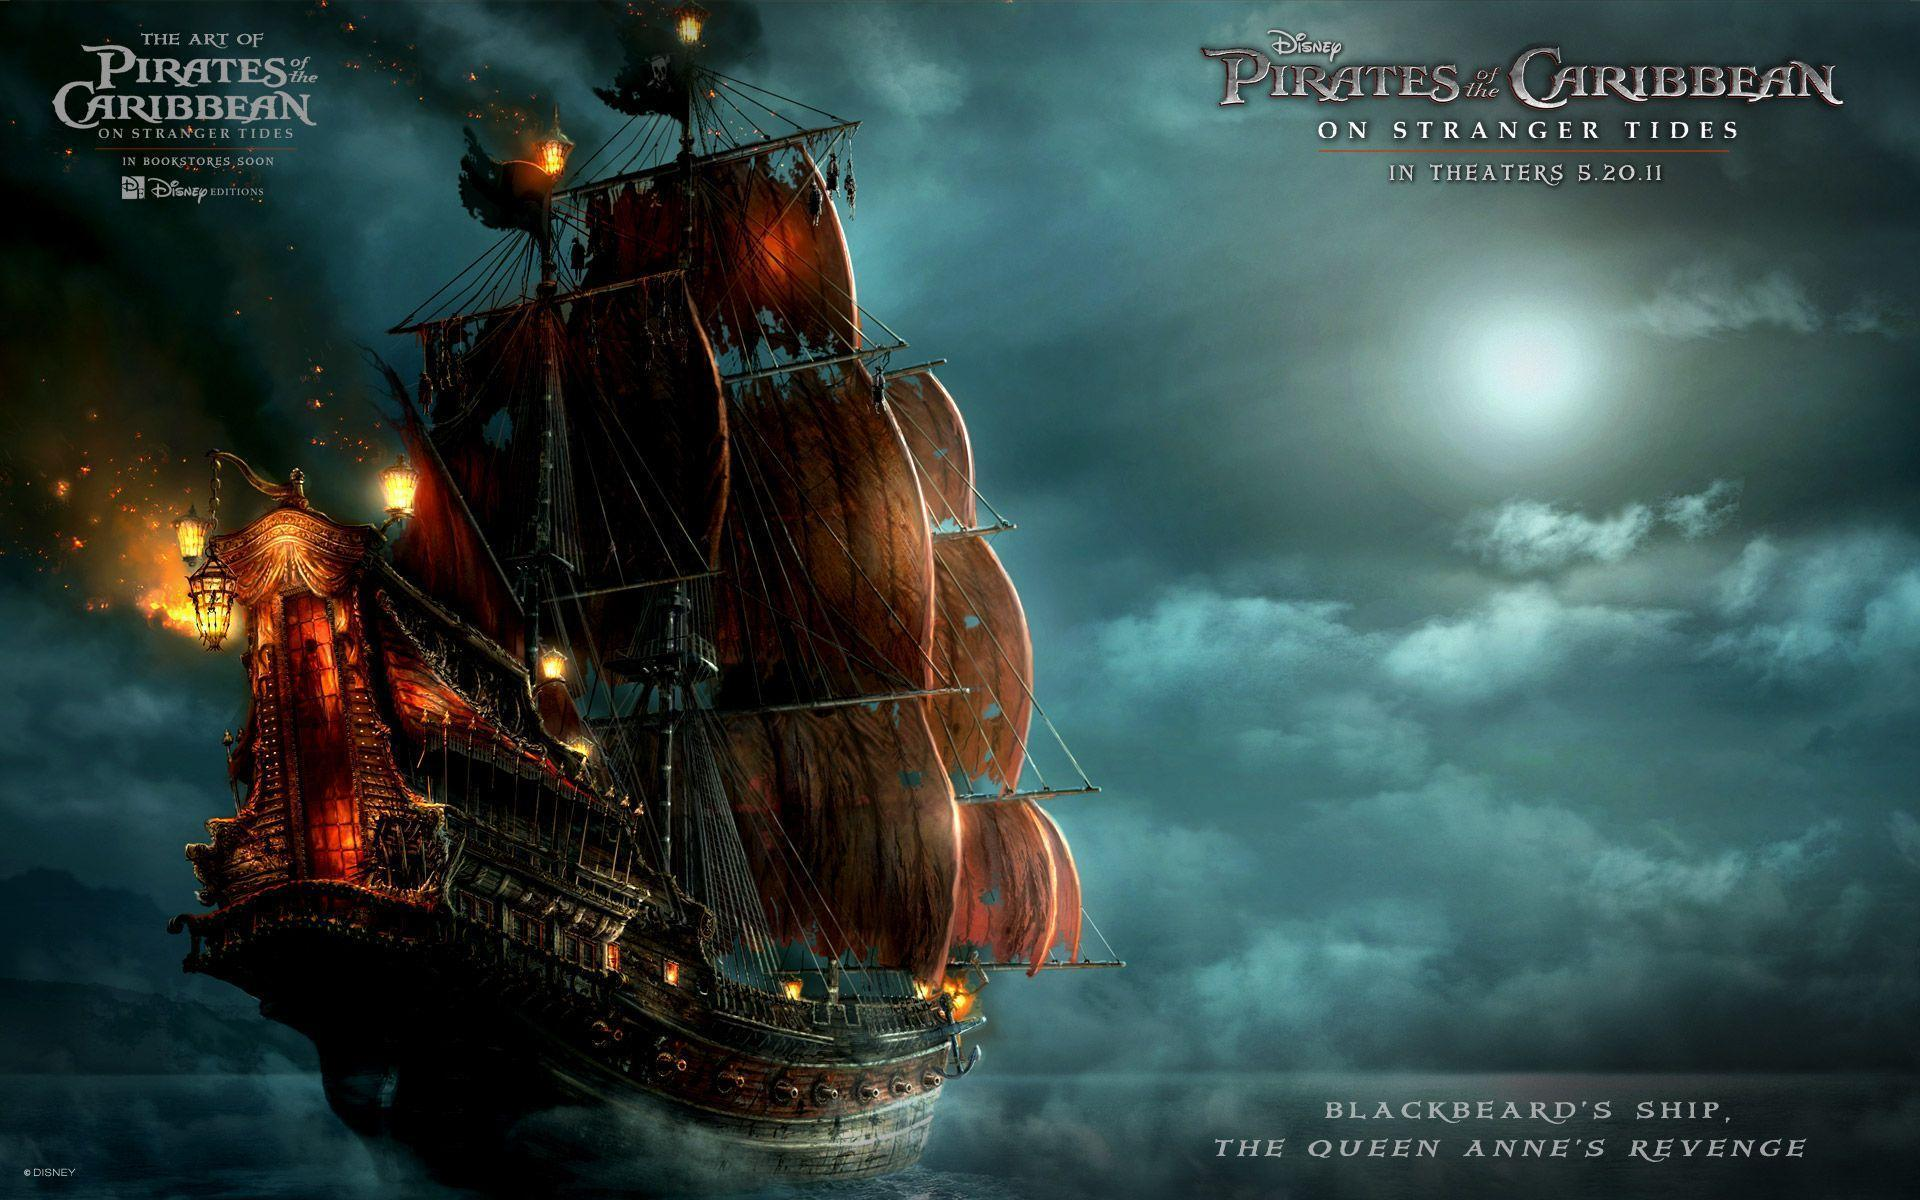 Blackbeard's Ship in Pirates Of The Caribbean 4 Wallpapers | HD ...